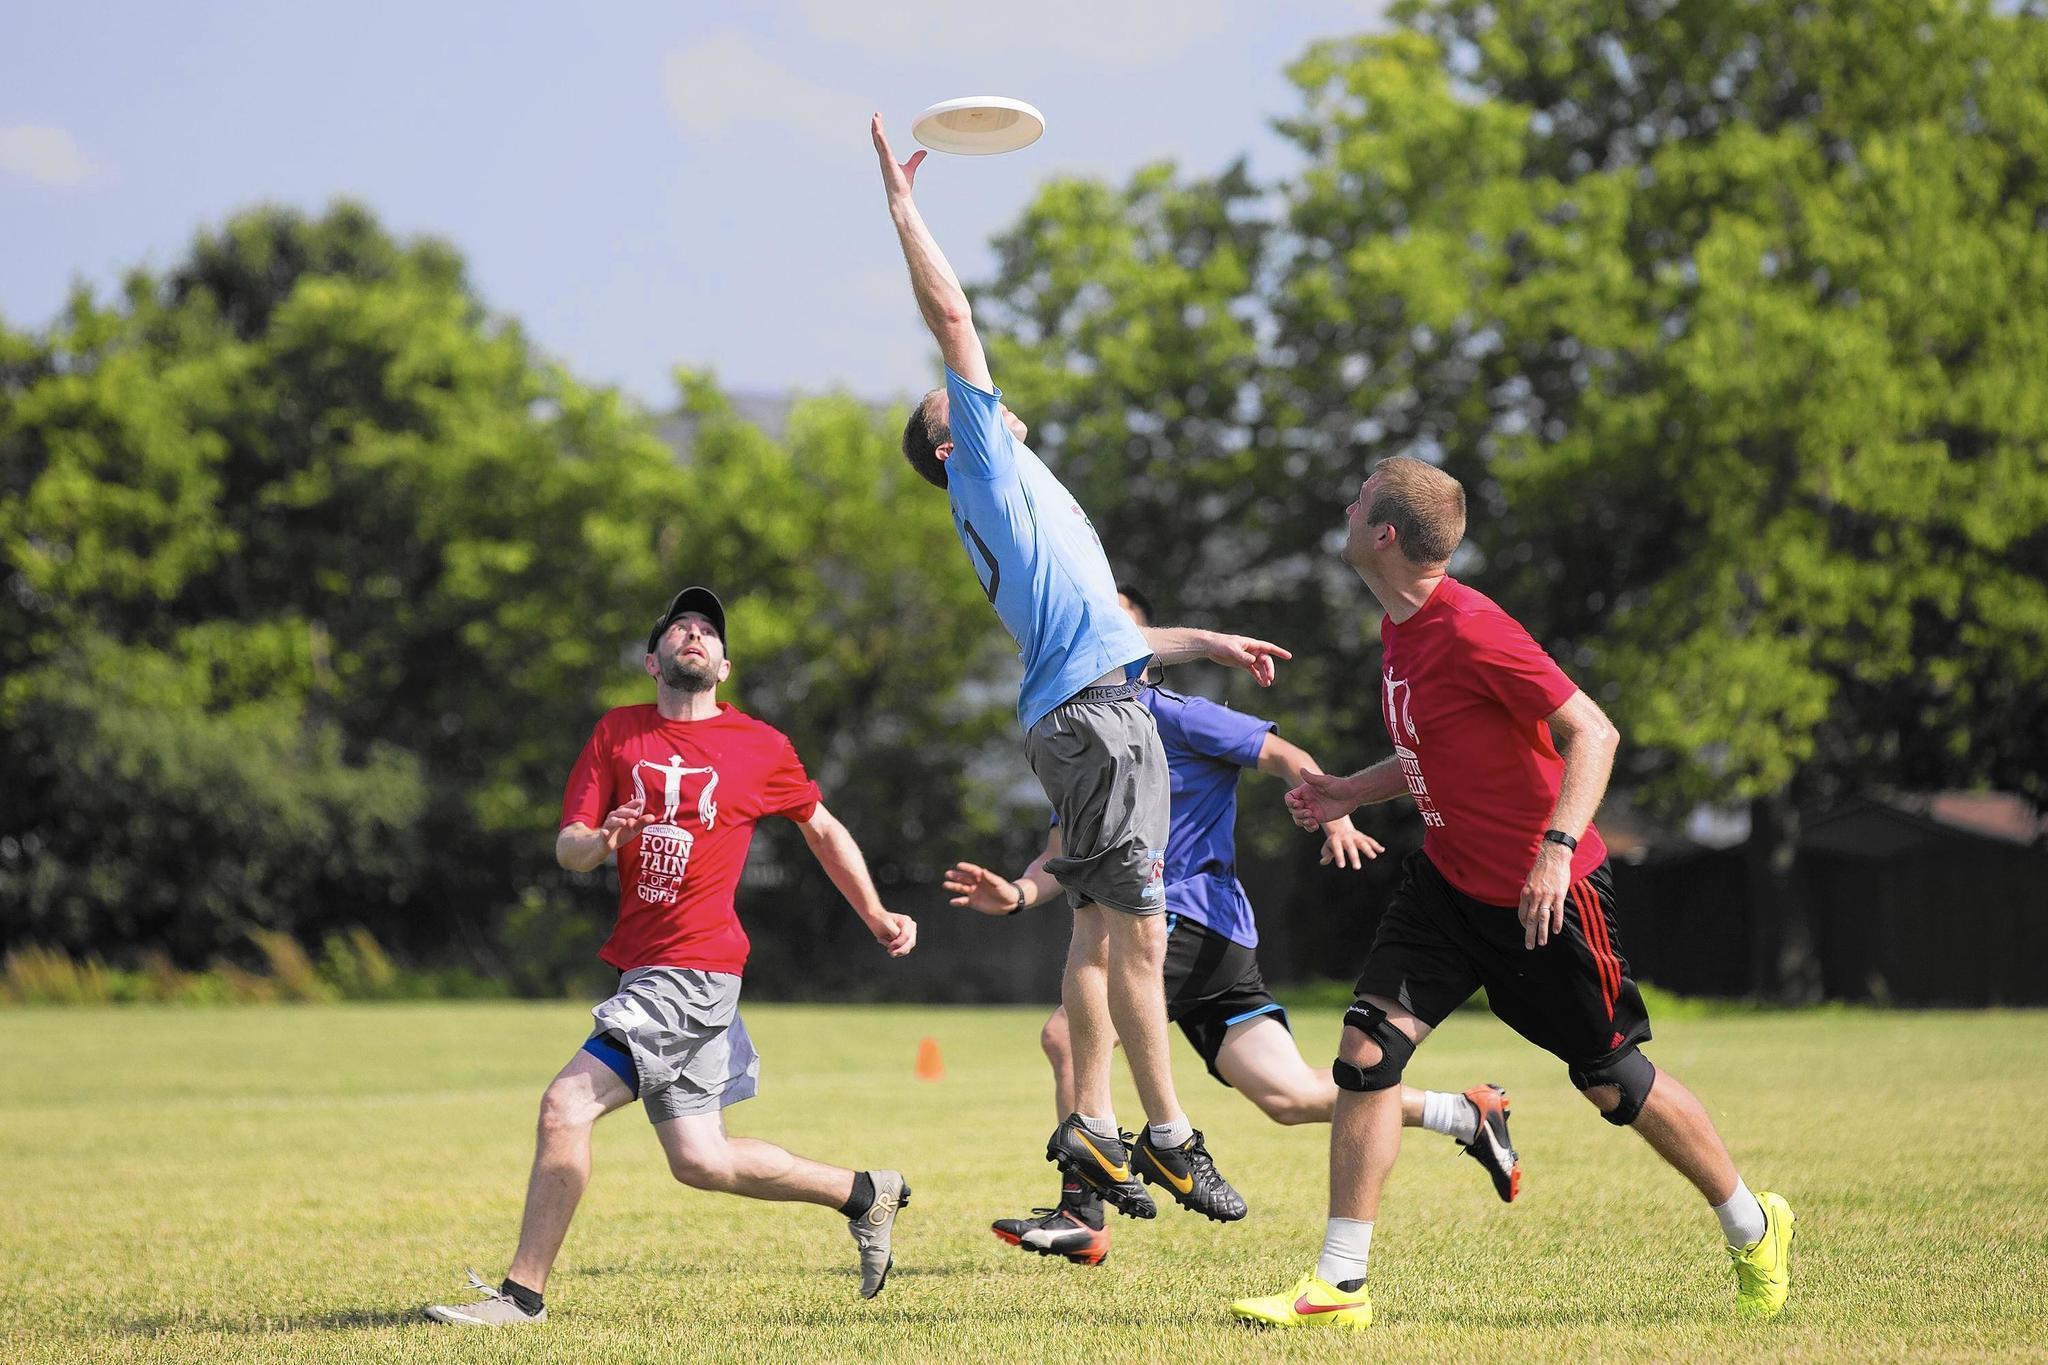 Montgomery to host Ultimate Frisbee championship - Aurora Beacon-News